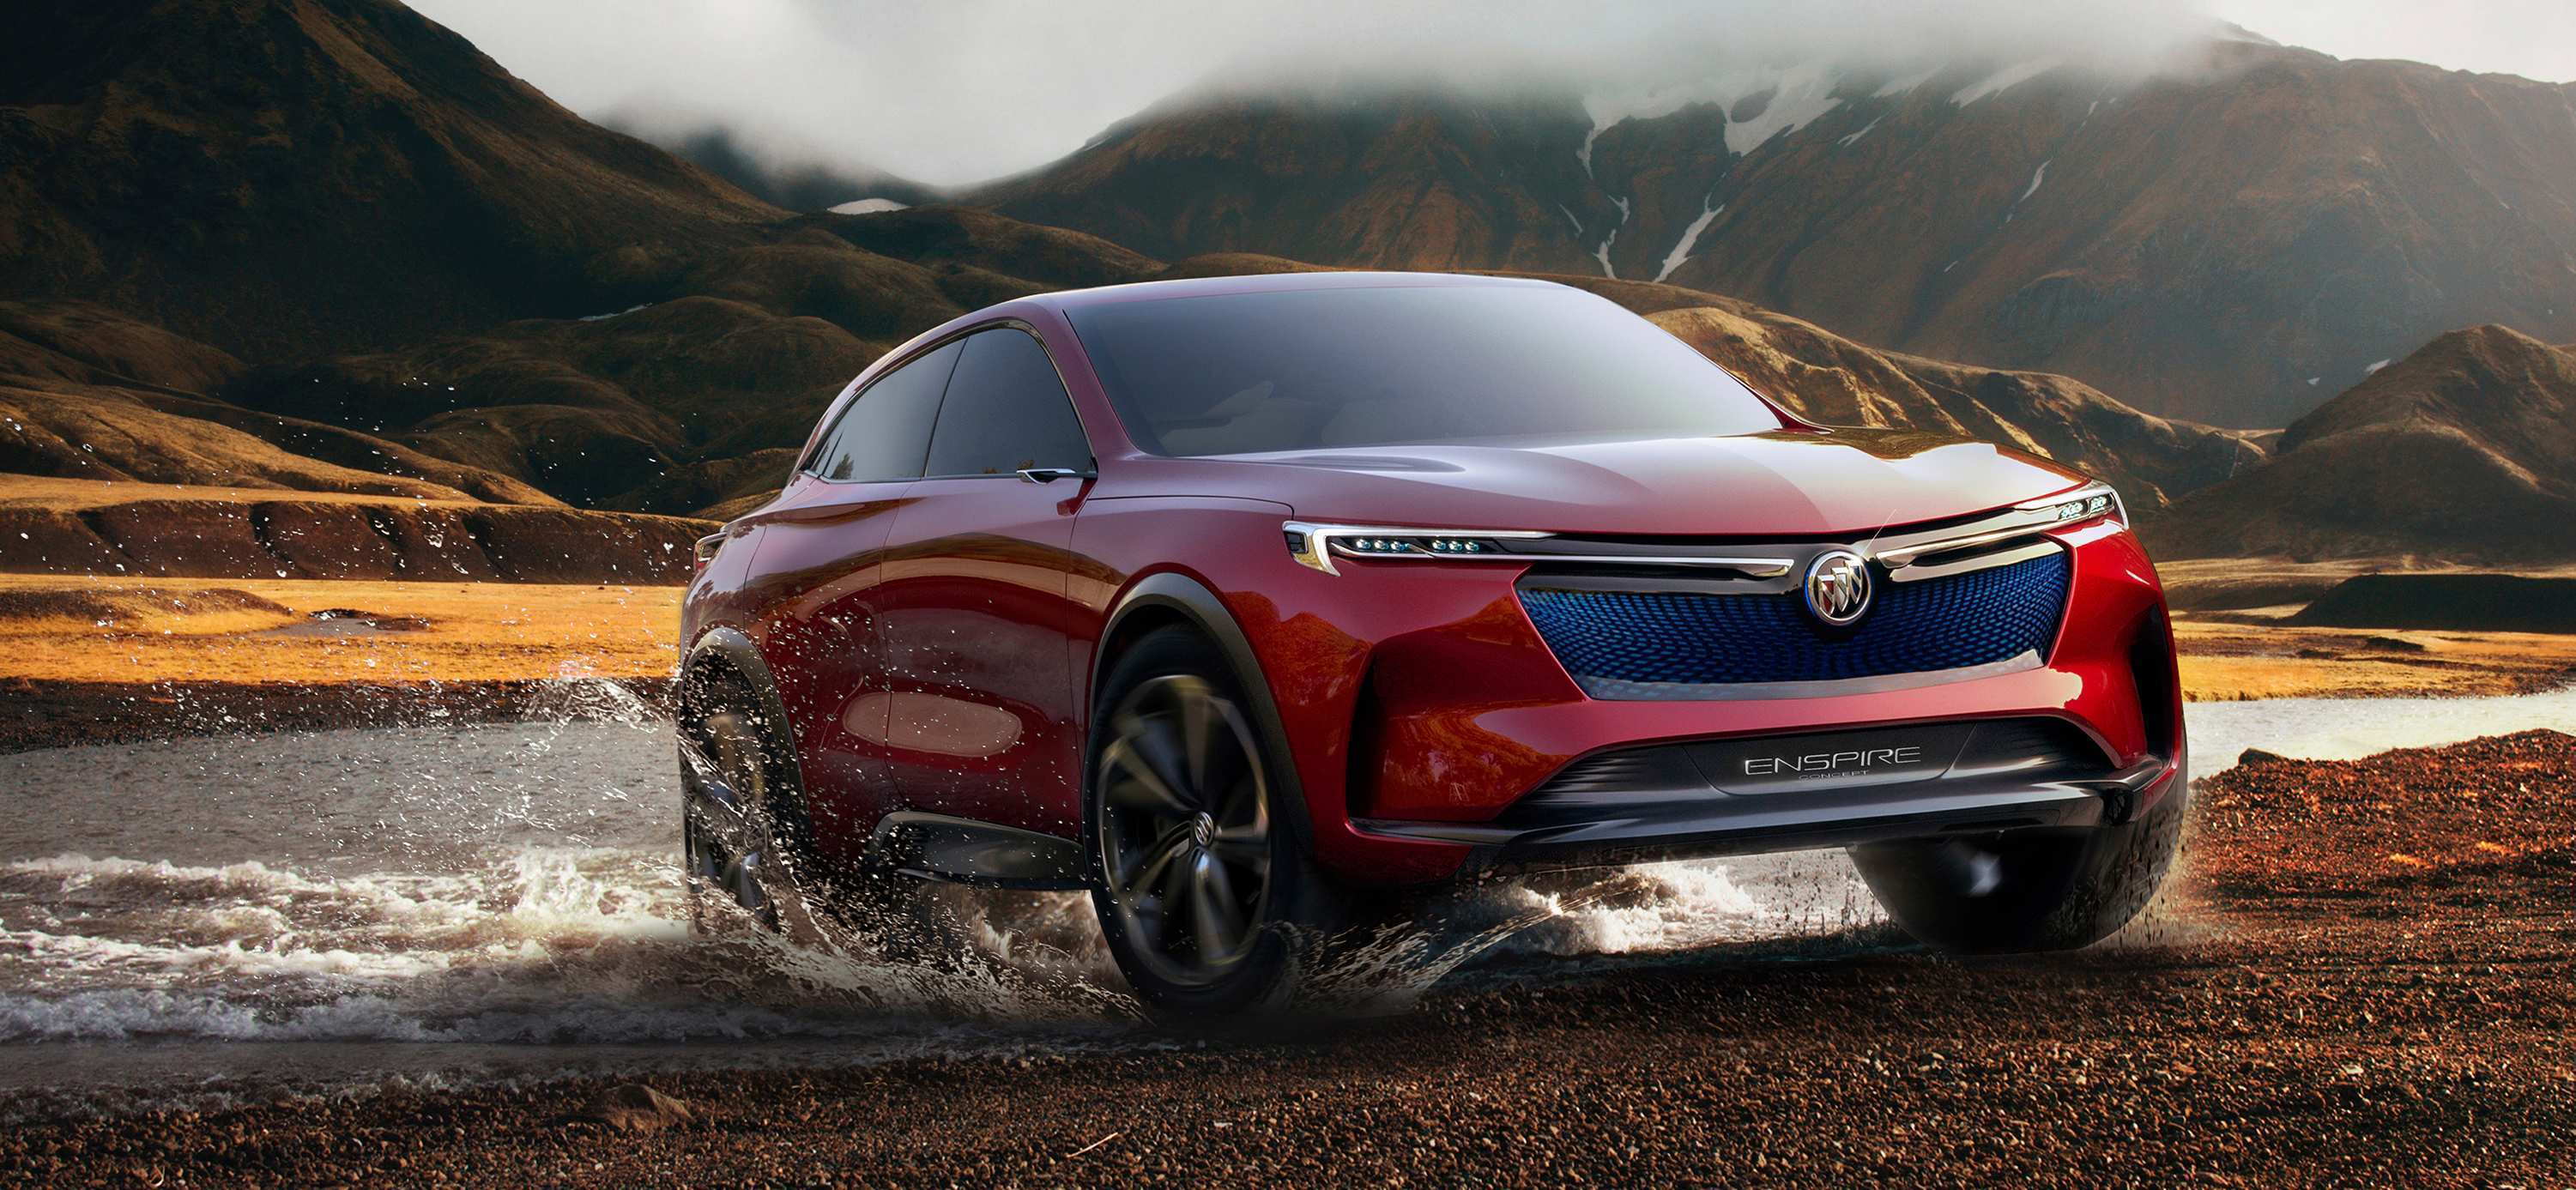 93 The Best 2020 Buick Enspire Redesign And Concept